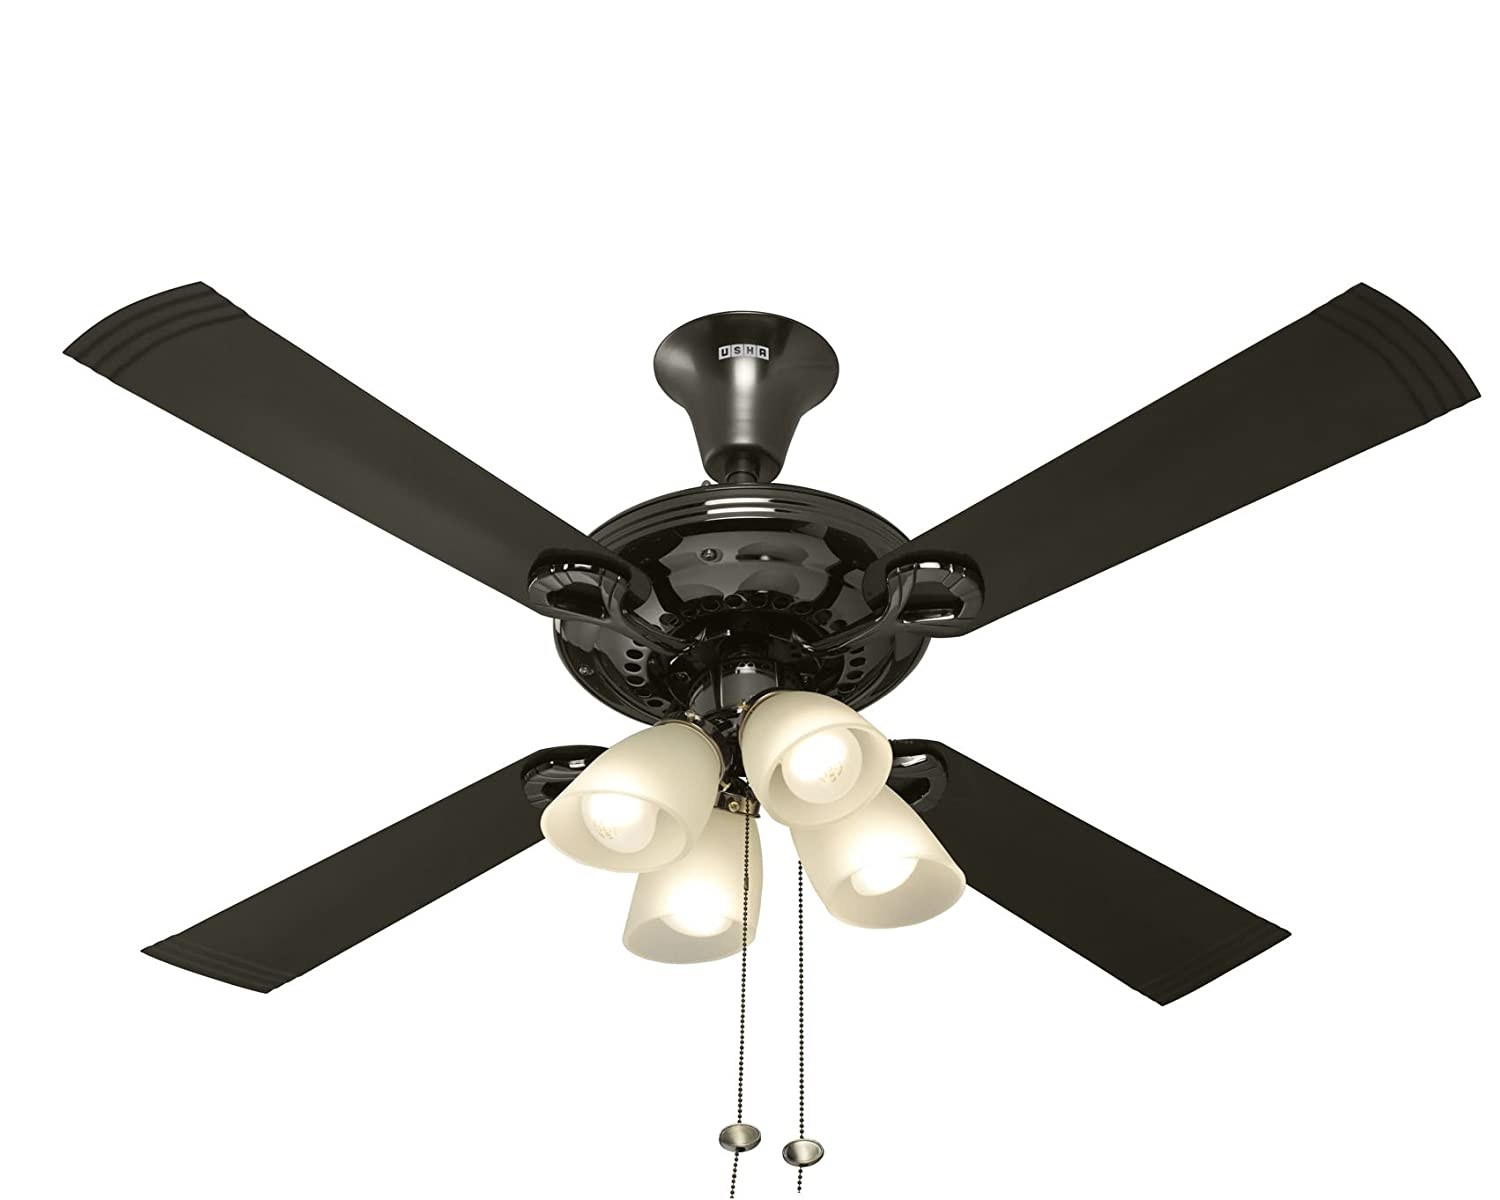 Buy Usha Fontana Lotus 1230mm Ceiling Fan With Decorative Lights Light Wiring Diagram Systems Black Chrome Online At Low Prices In India